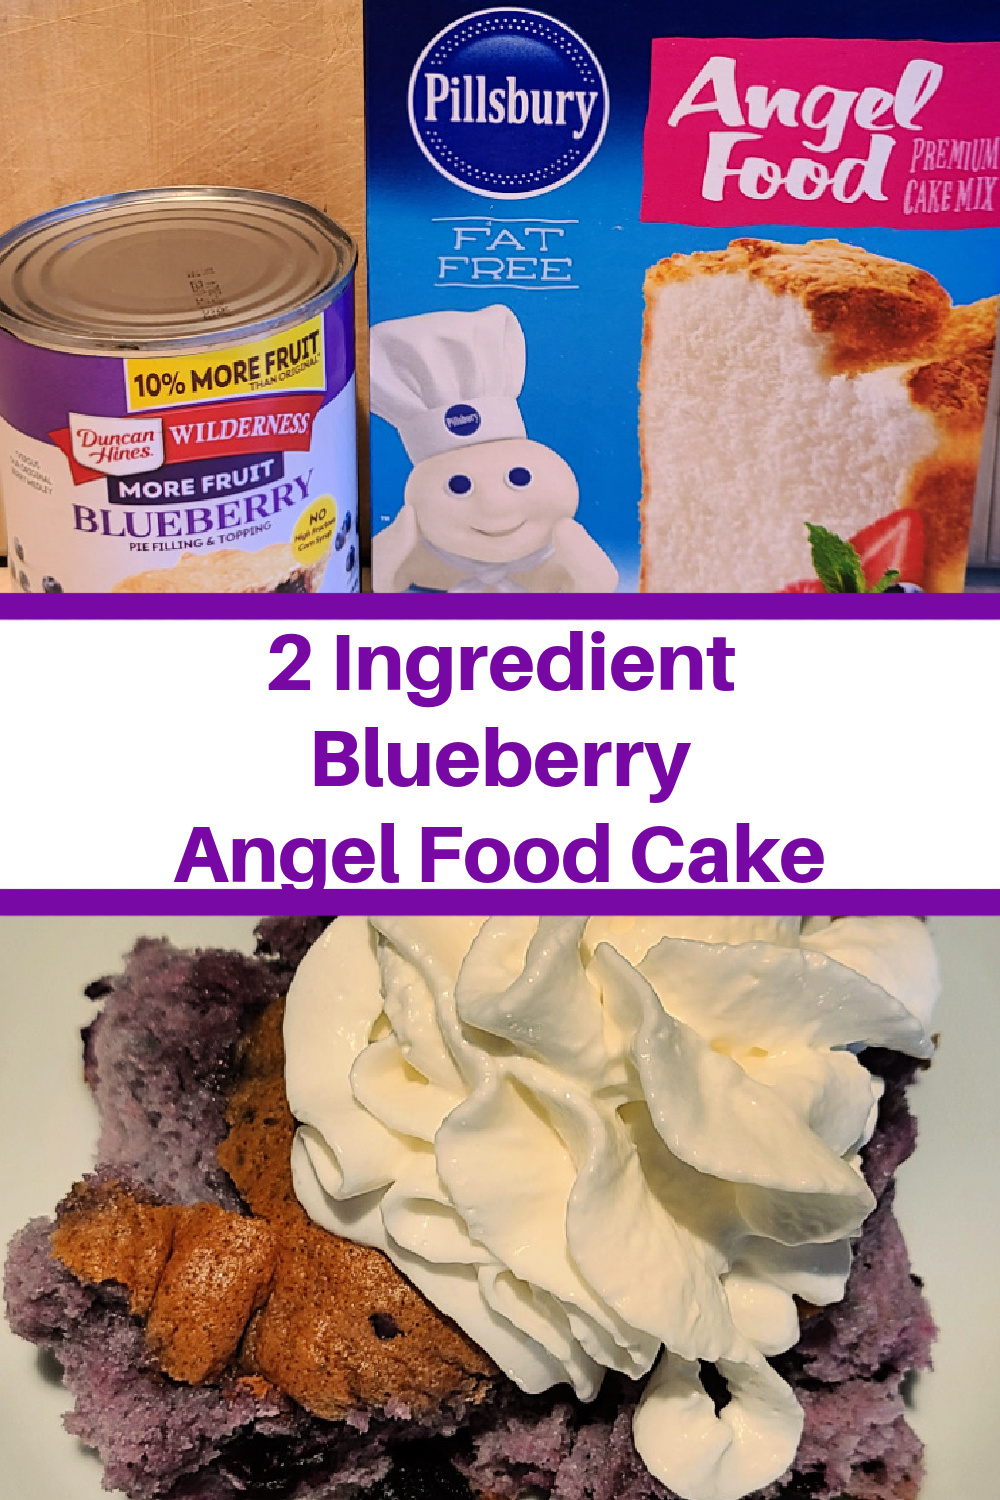 This 2 Ingredient Blueberry Angel Food Cake Recipe is so easy to make! This gooey dessert works out to low My WW Smartpoints as well! 2 Ingredient Desserts are so easy to make!